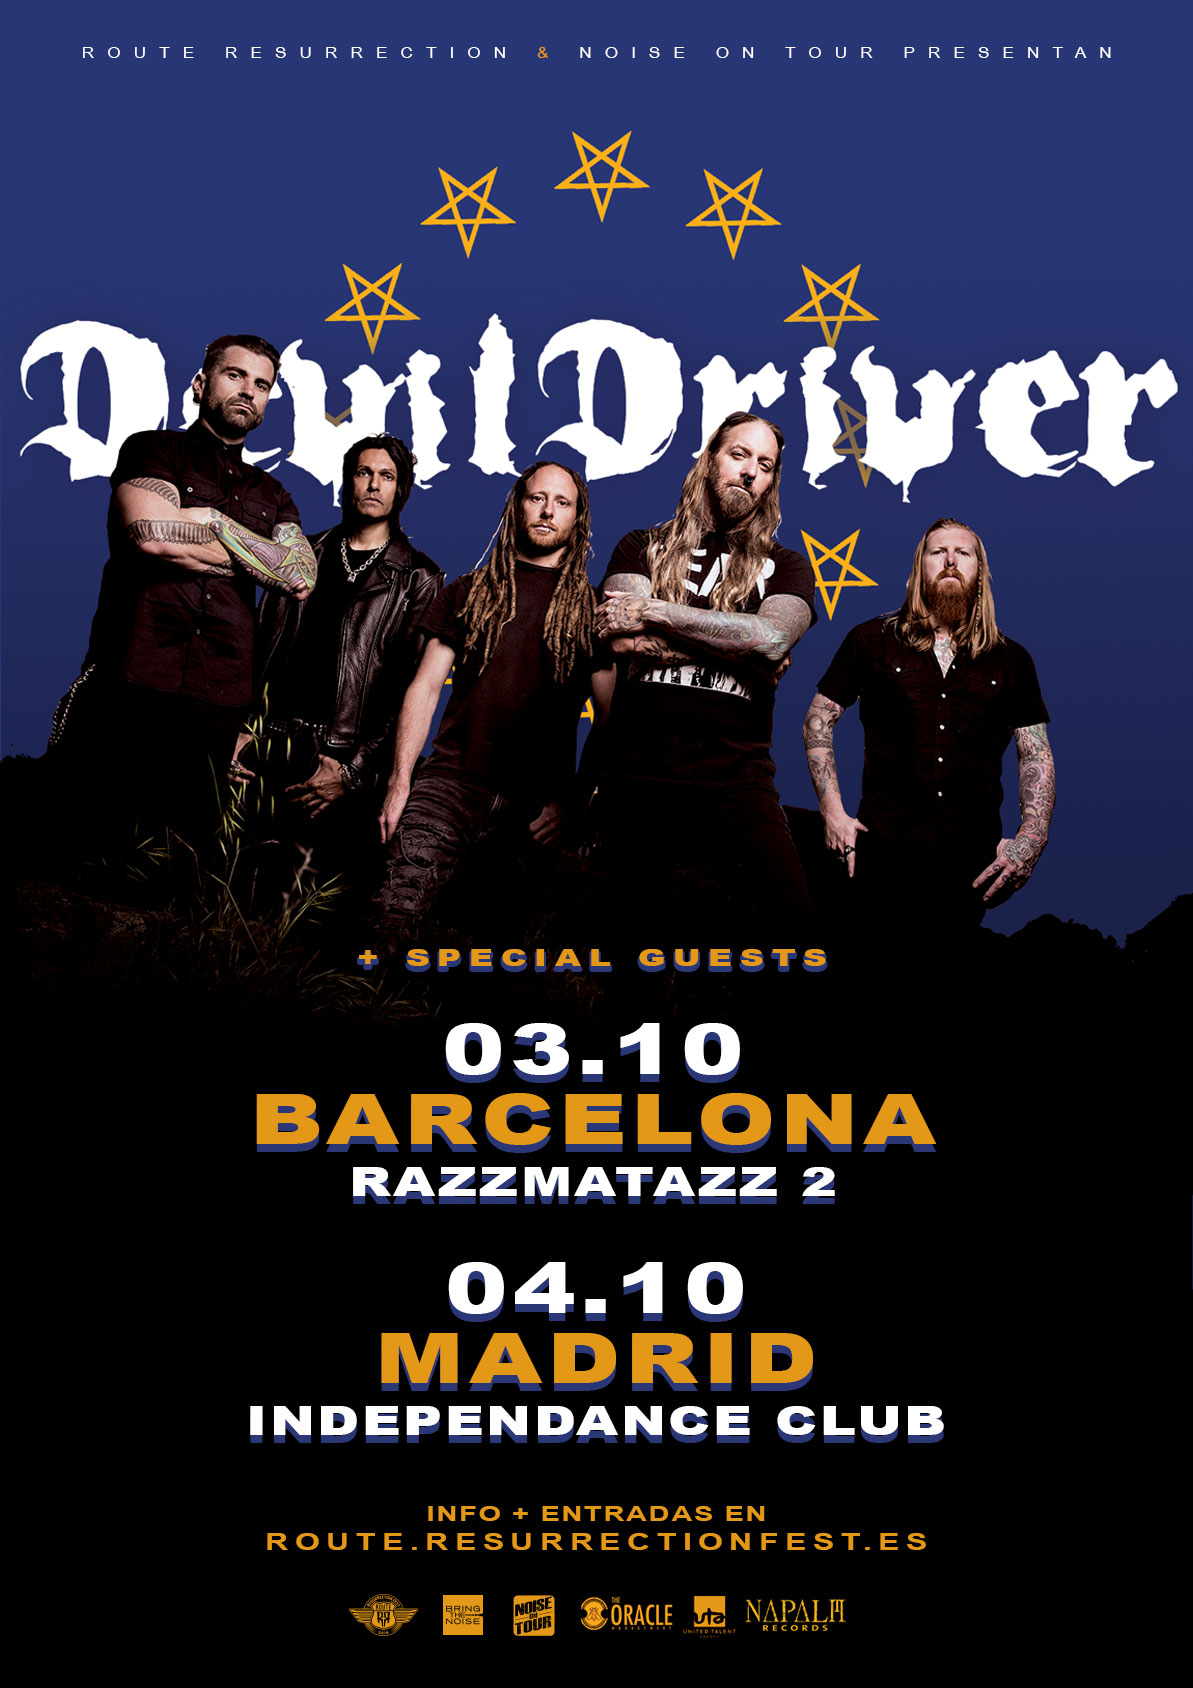 Route Resurrection 2019: DevilDriver (Barcelona)